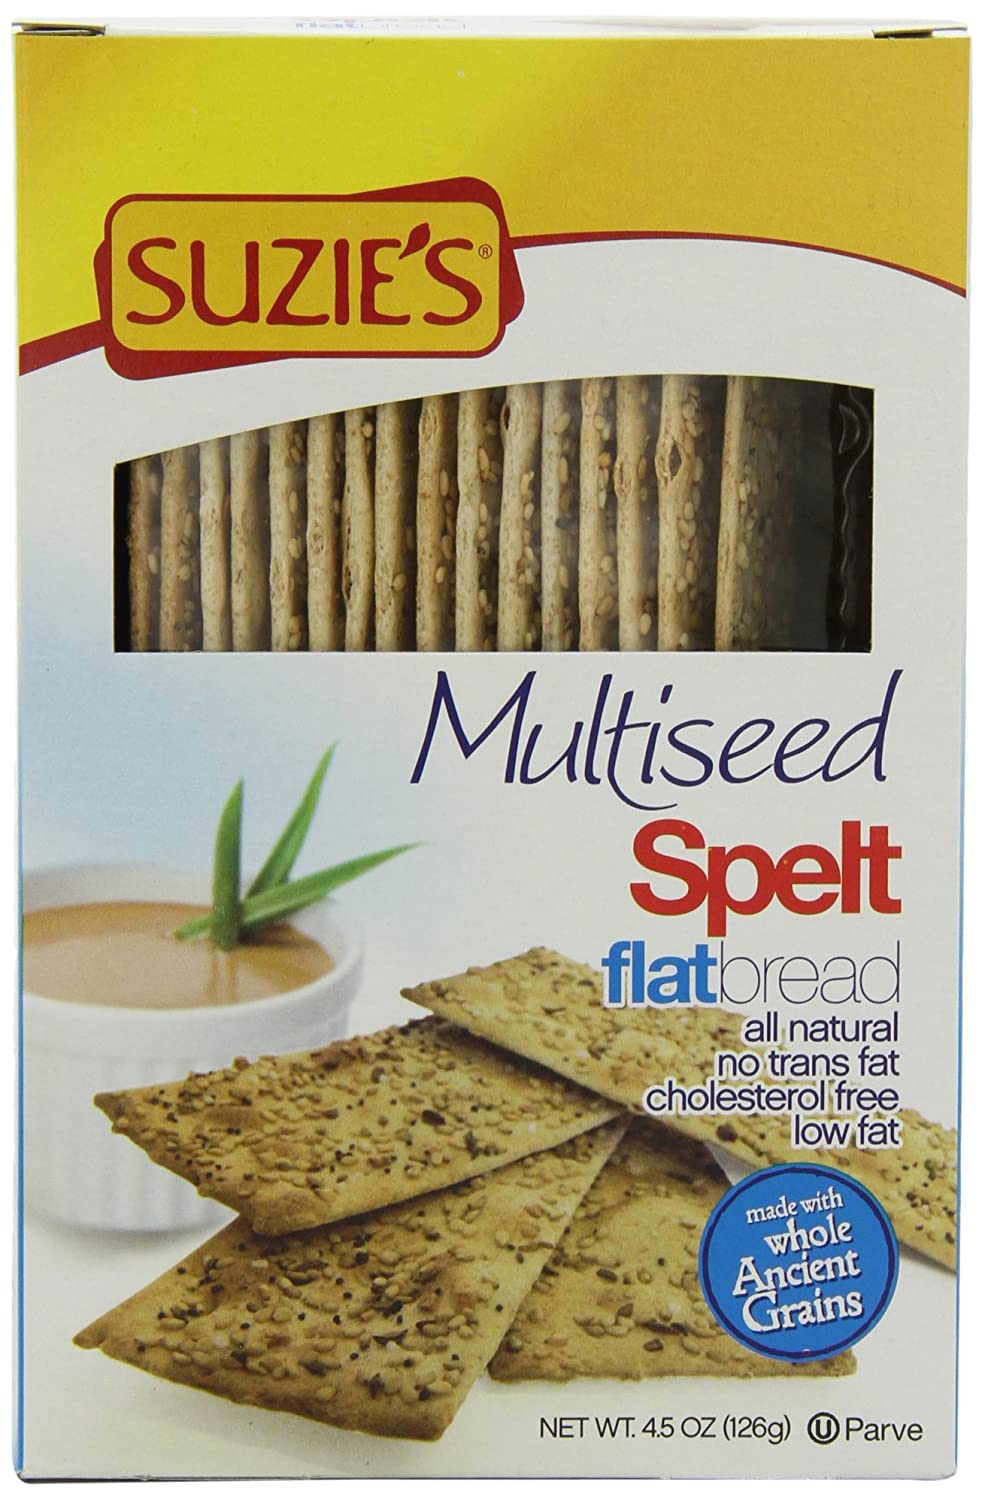 Amazon.com : Suzies Spelt Flatbread, Multiseed, 4.5-Ounce Box (Pack of 12) : Flatbread Crackers : Grocery & Gourmet Food